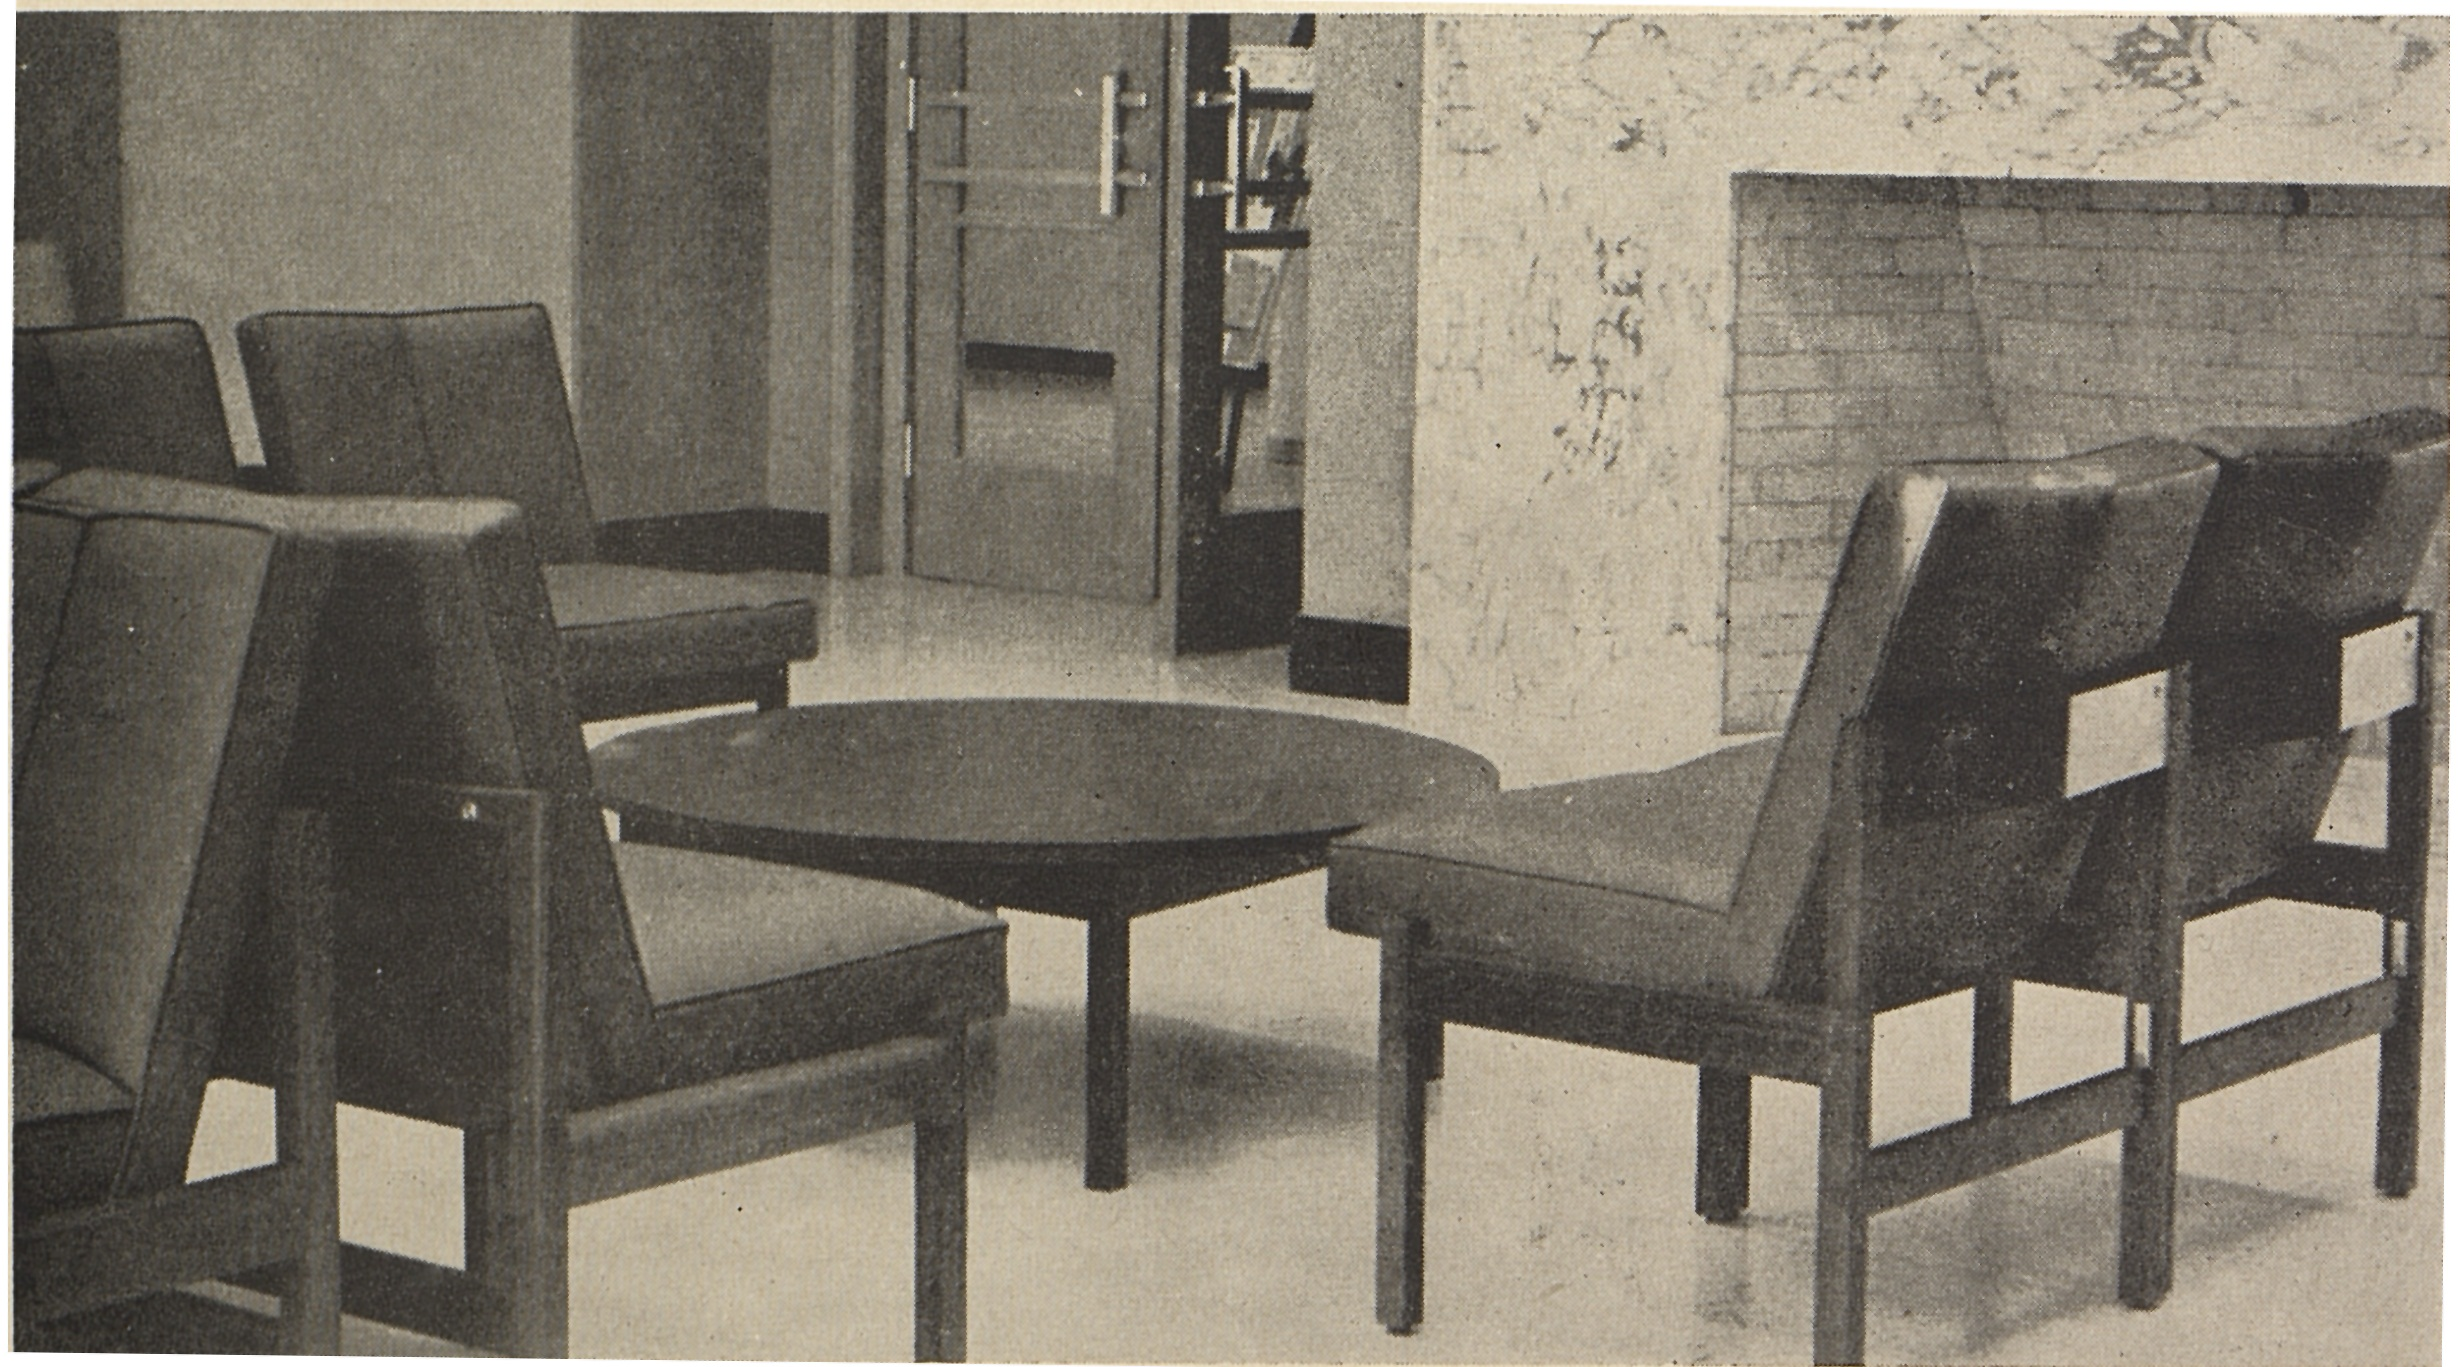 Keeton's Casino lounge area, circa 1964